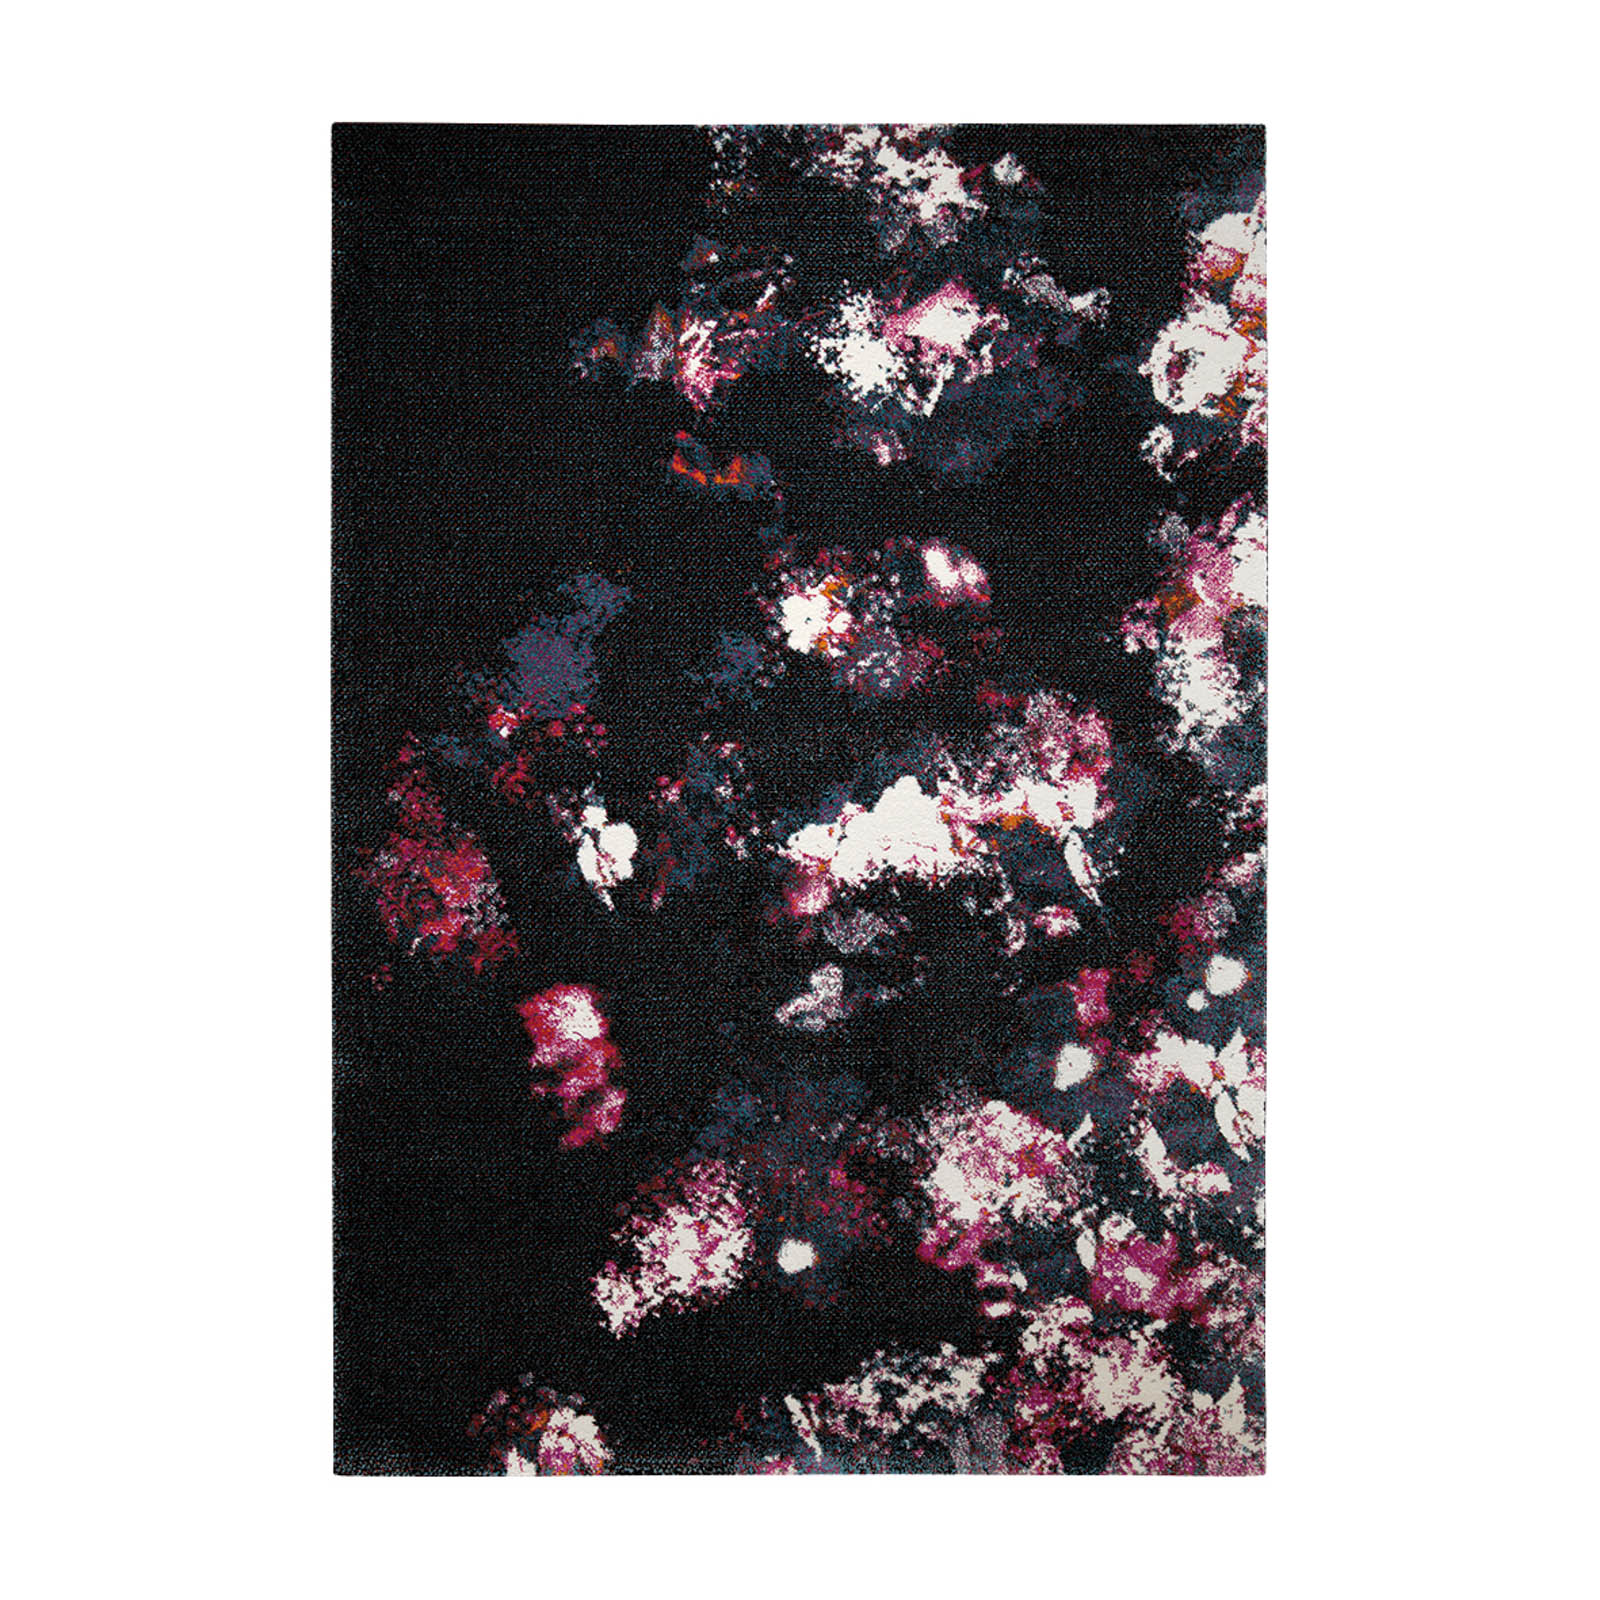 Nocturnal Flowers Rugs 2657 090 in Black and Pink by Esprit